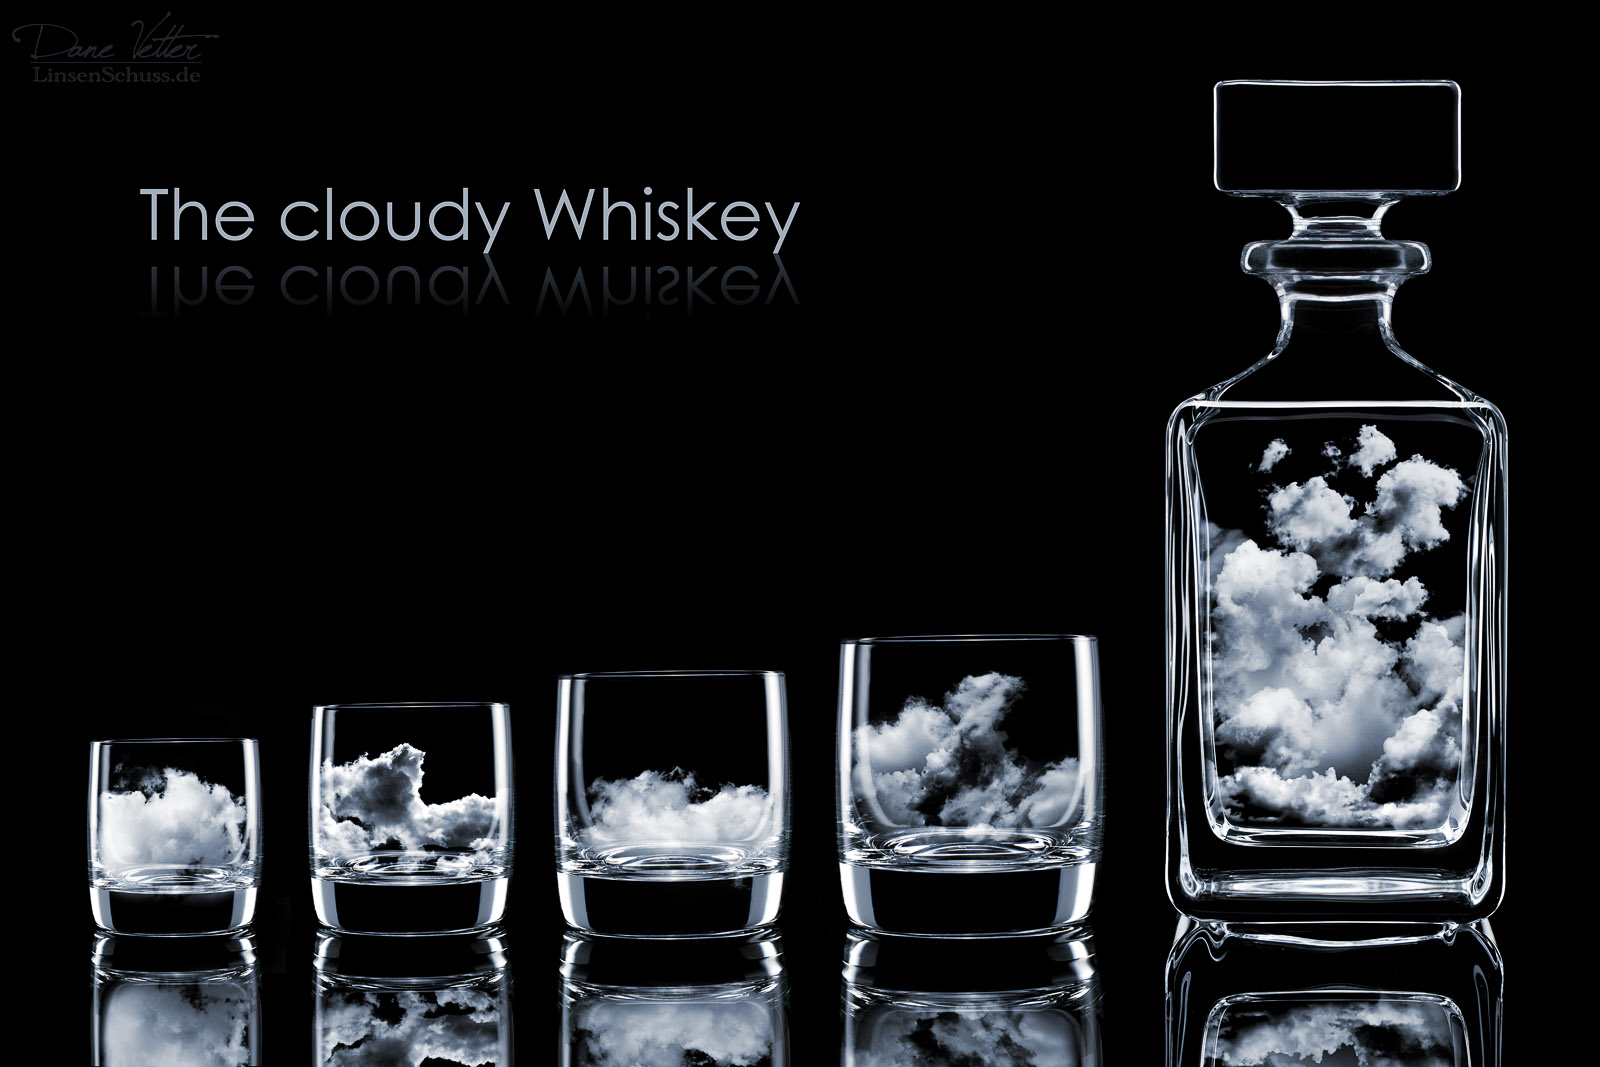 The cloudy Whisky by LinsenSchuss